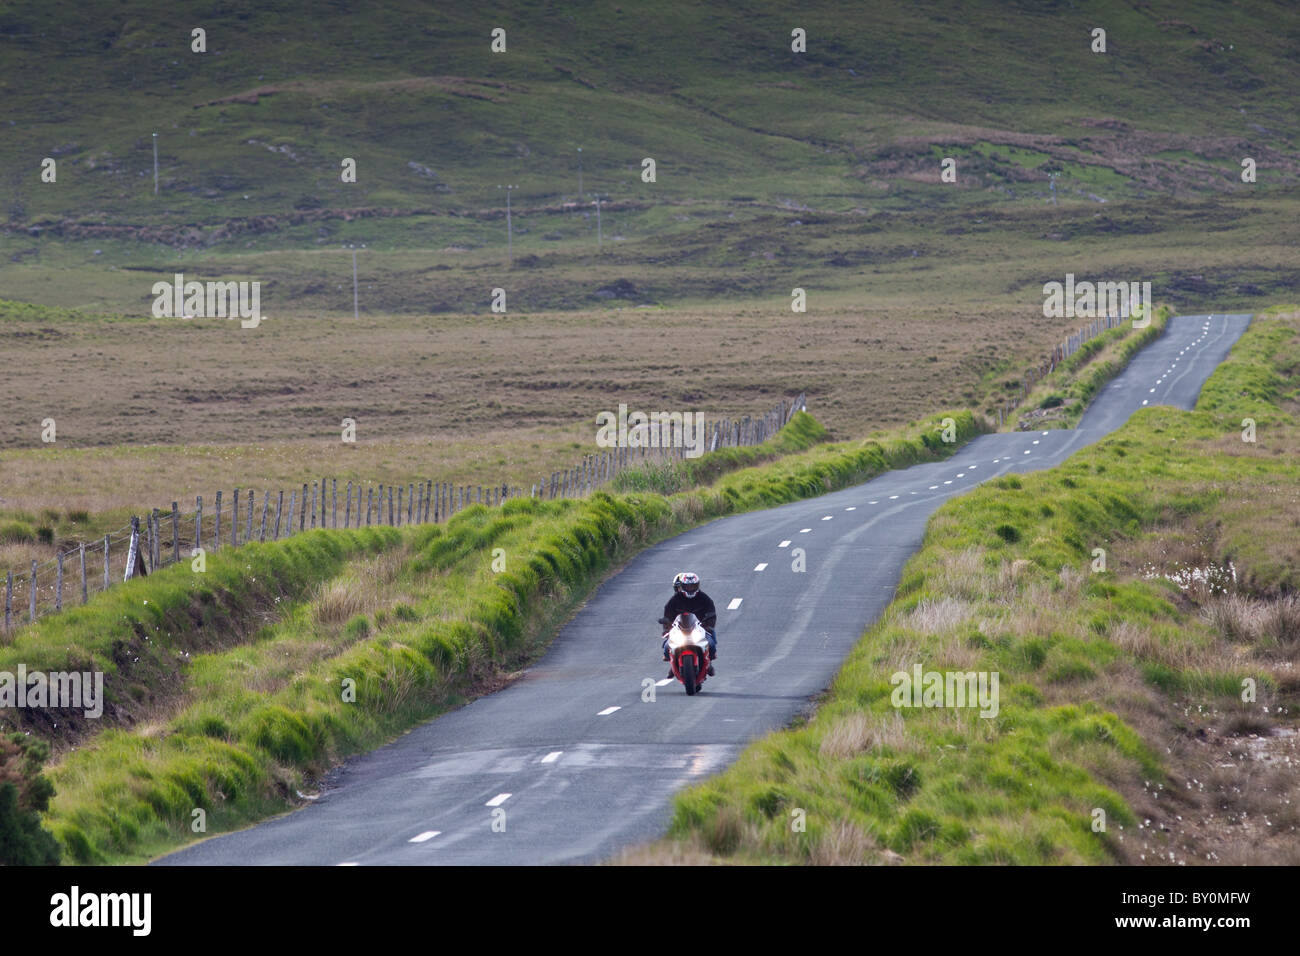 Motorcyclist on Kylemore Pass in Connemara National Park, County Galway, Ireland - Stock Image